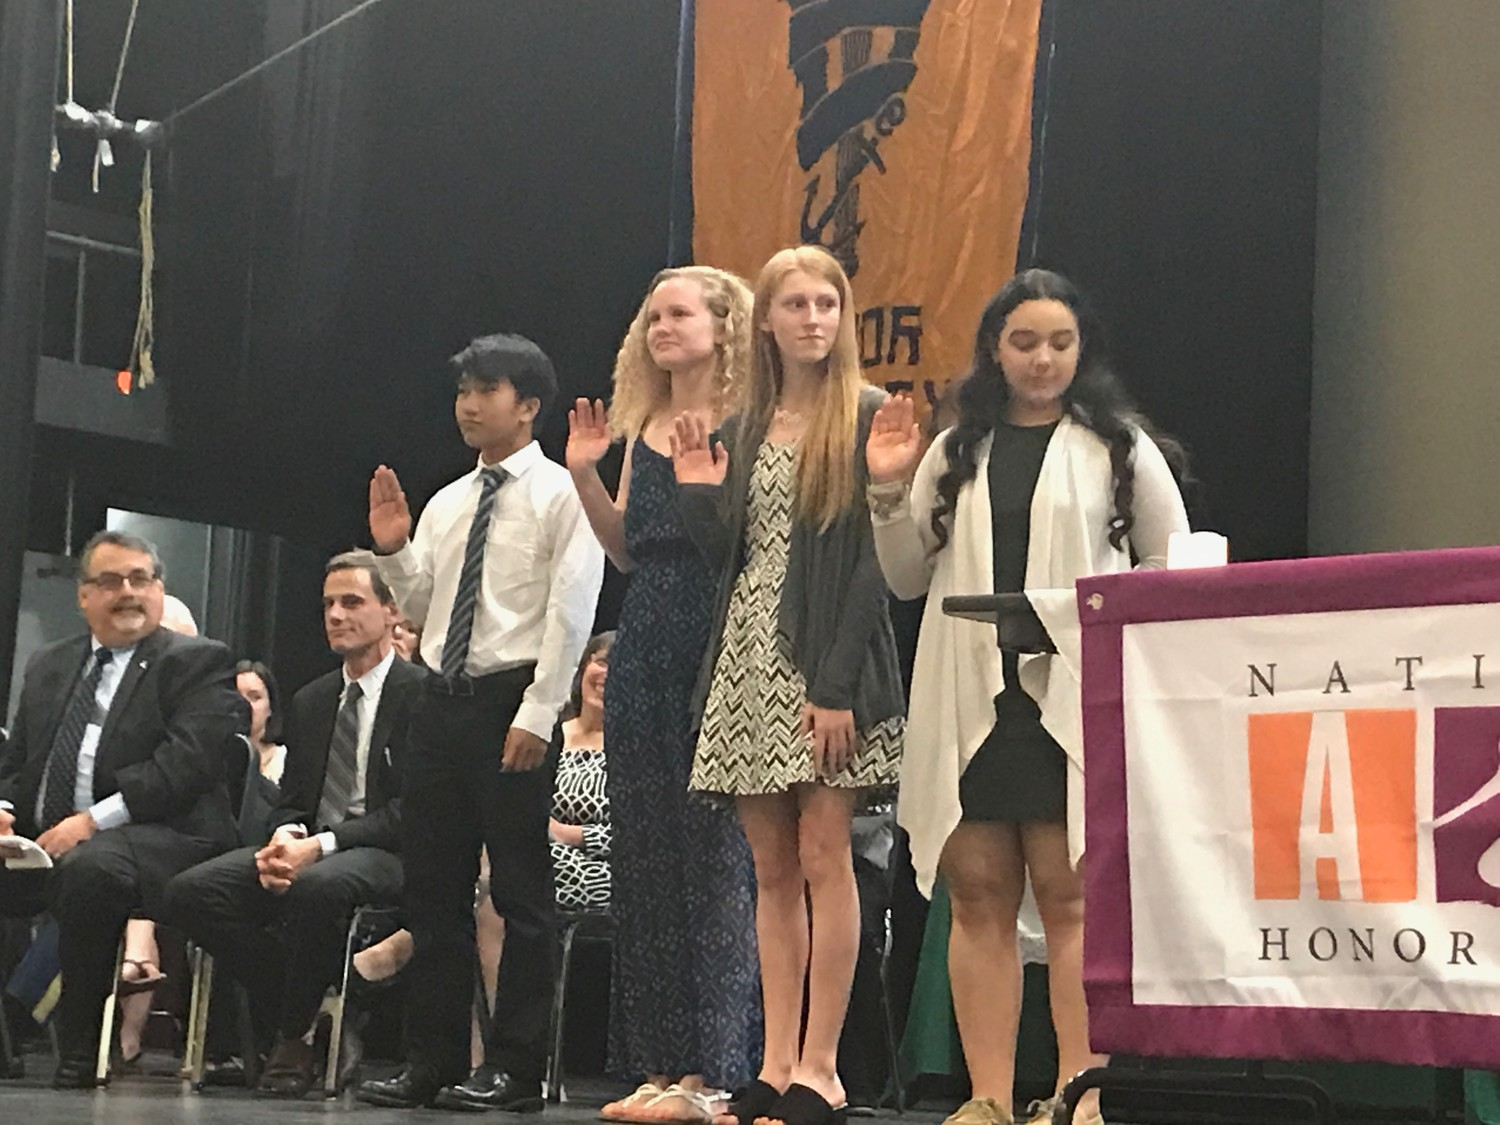 THE NEW REGIME: The newly inducted officers for the National Honor Society class of 2019 are (l-r) secretaries Sokpearoun Lorn and Elanor Trimm, vice president Delia Maguire, and president Adriany Cruz.